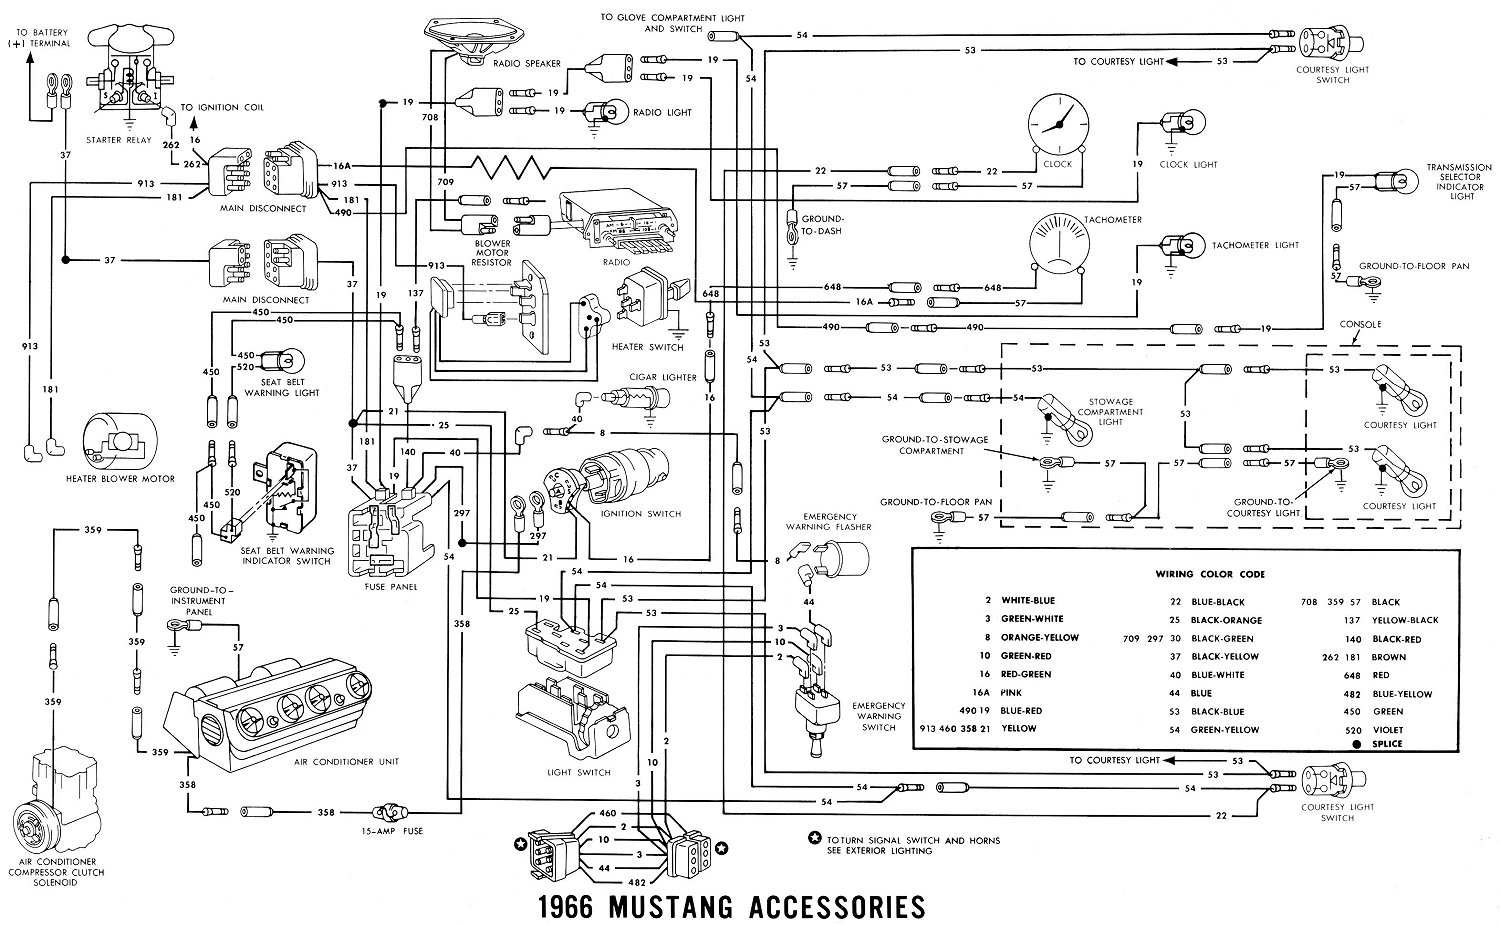 1970 ford mustang heater wiring diagram - wiring diagram prev please-temple  - please-temple.mabioxfood.fr  mabioxfood.fr